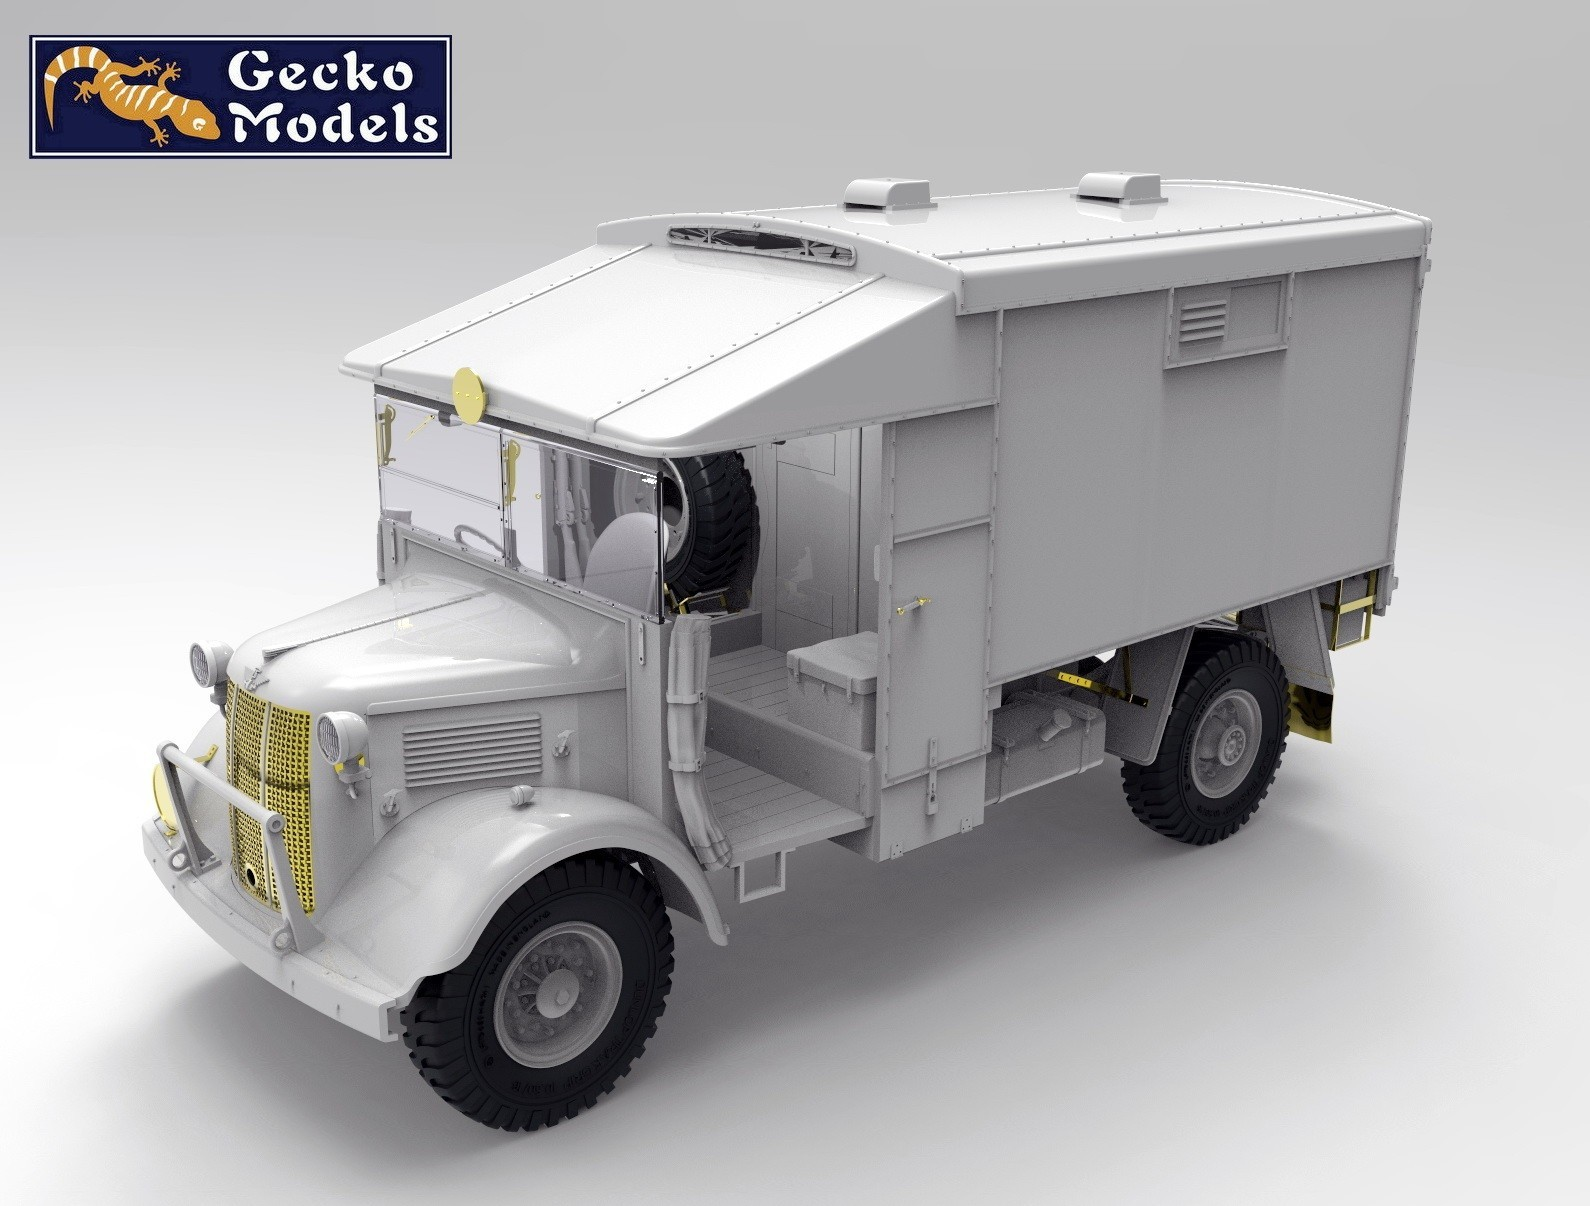 GECKO MODELS - Page 3 835-entry-4-1622805562